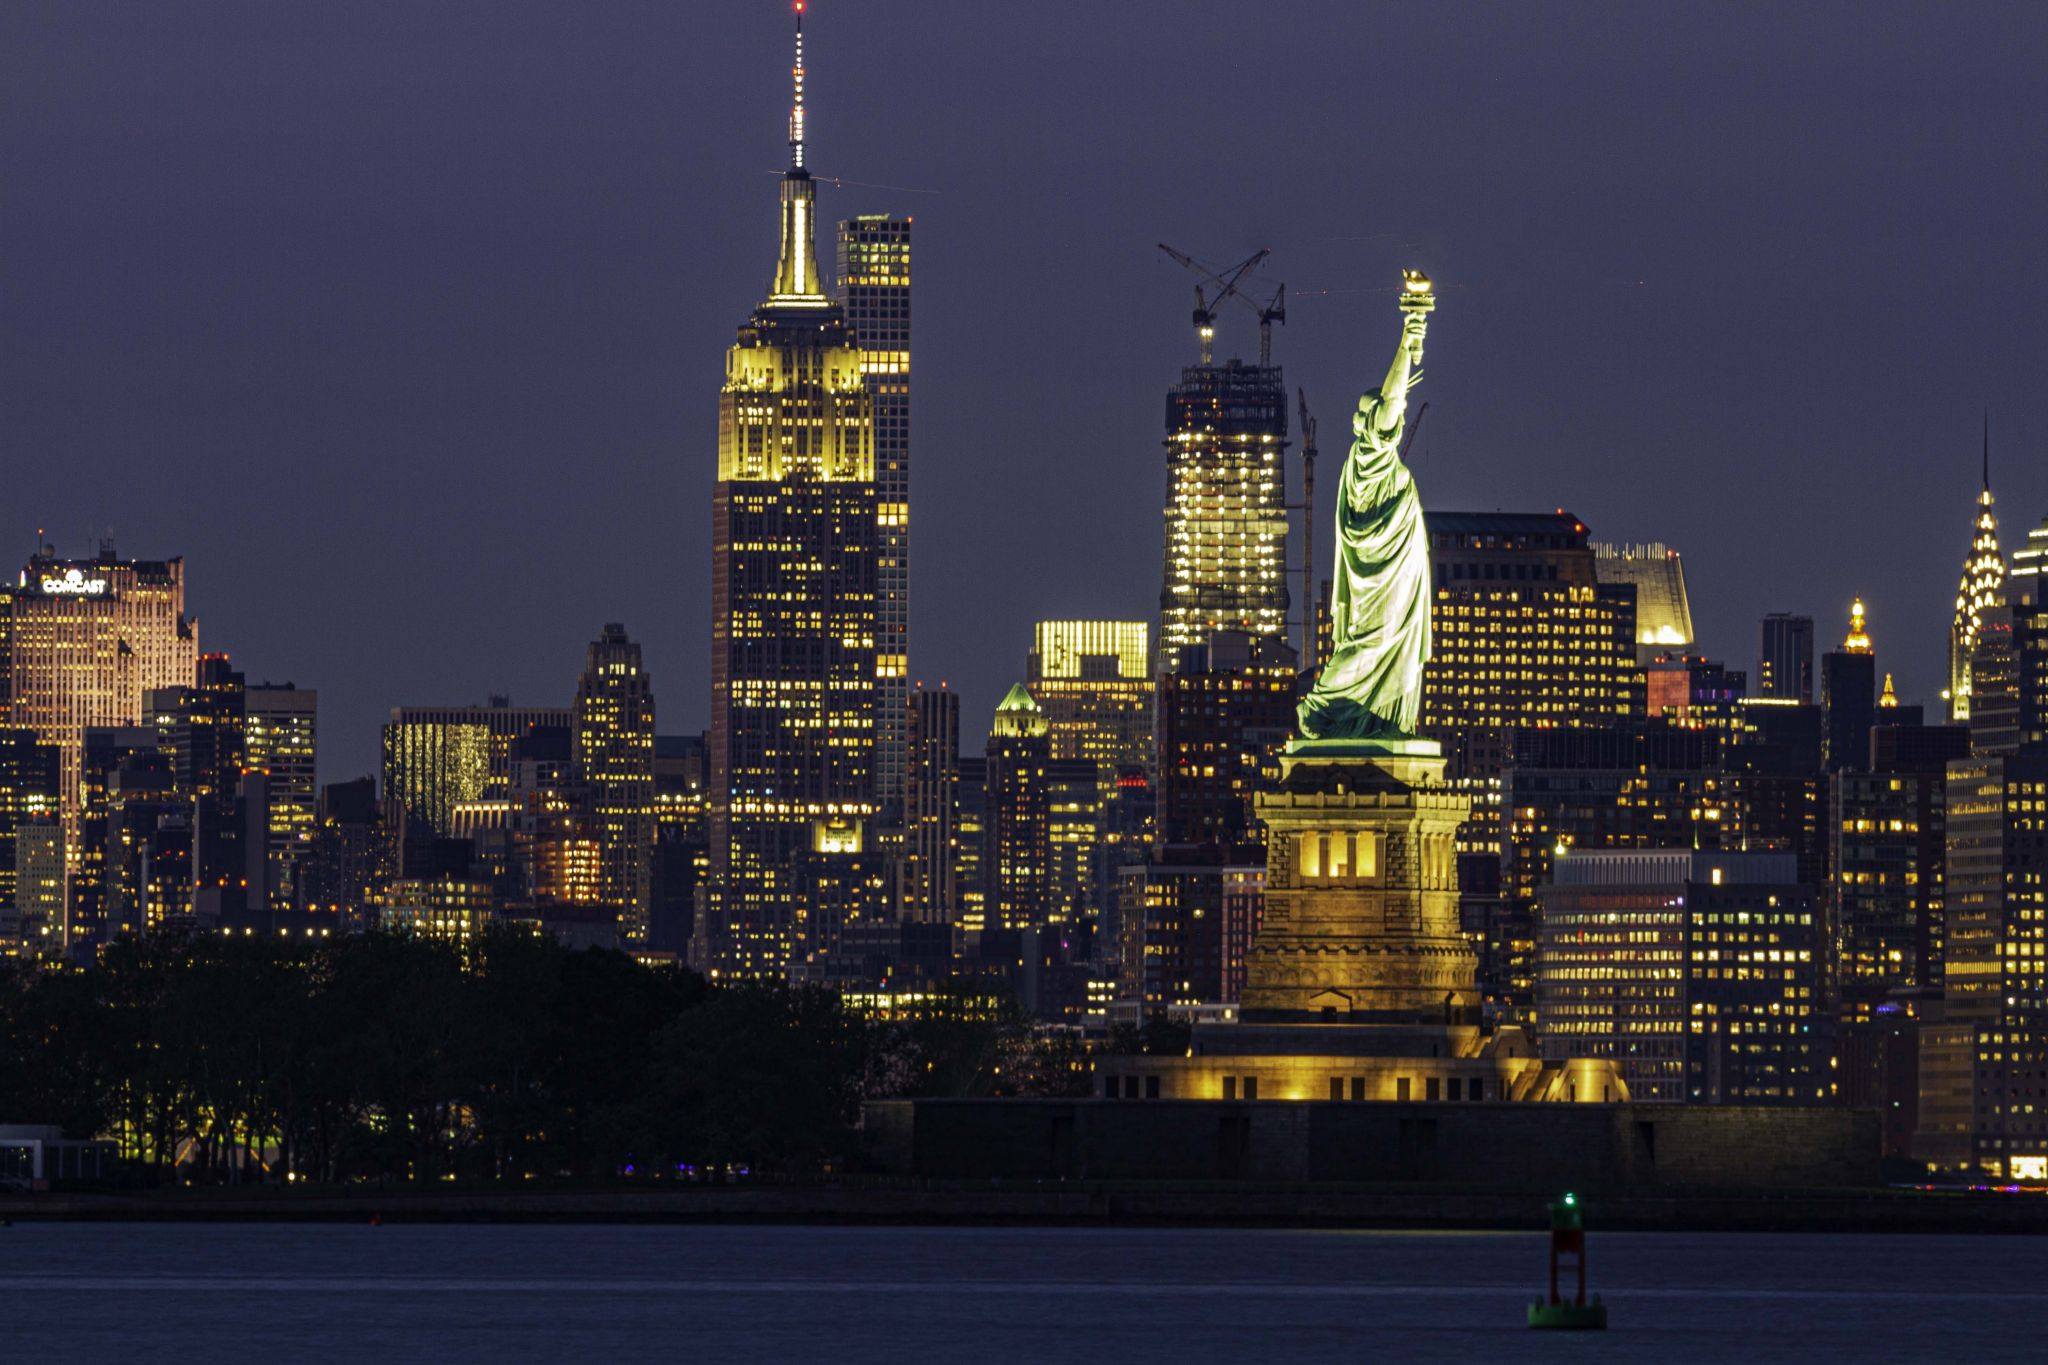 Liberty Statue with Empire State Building, USA